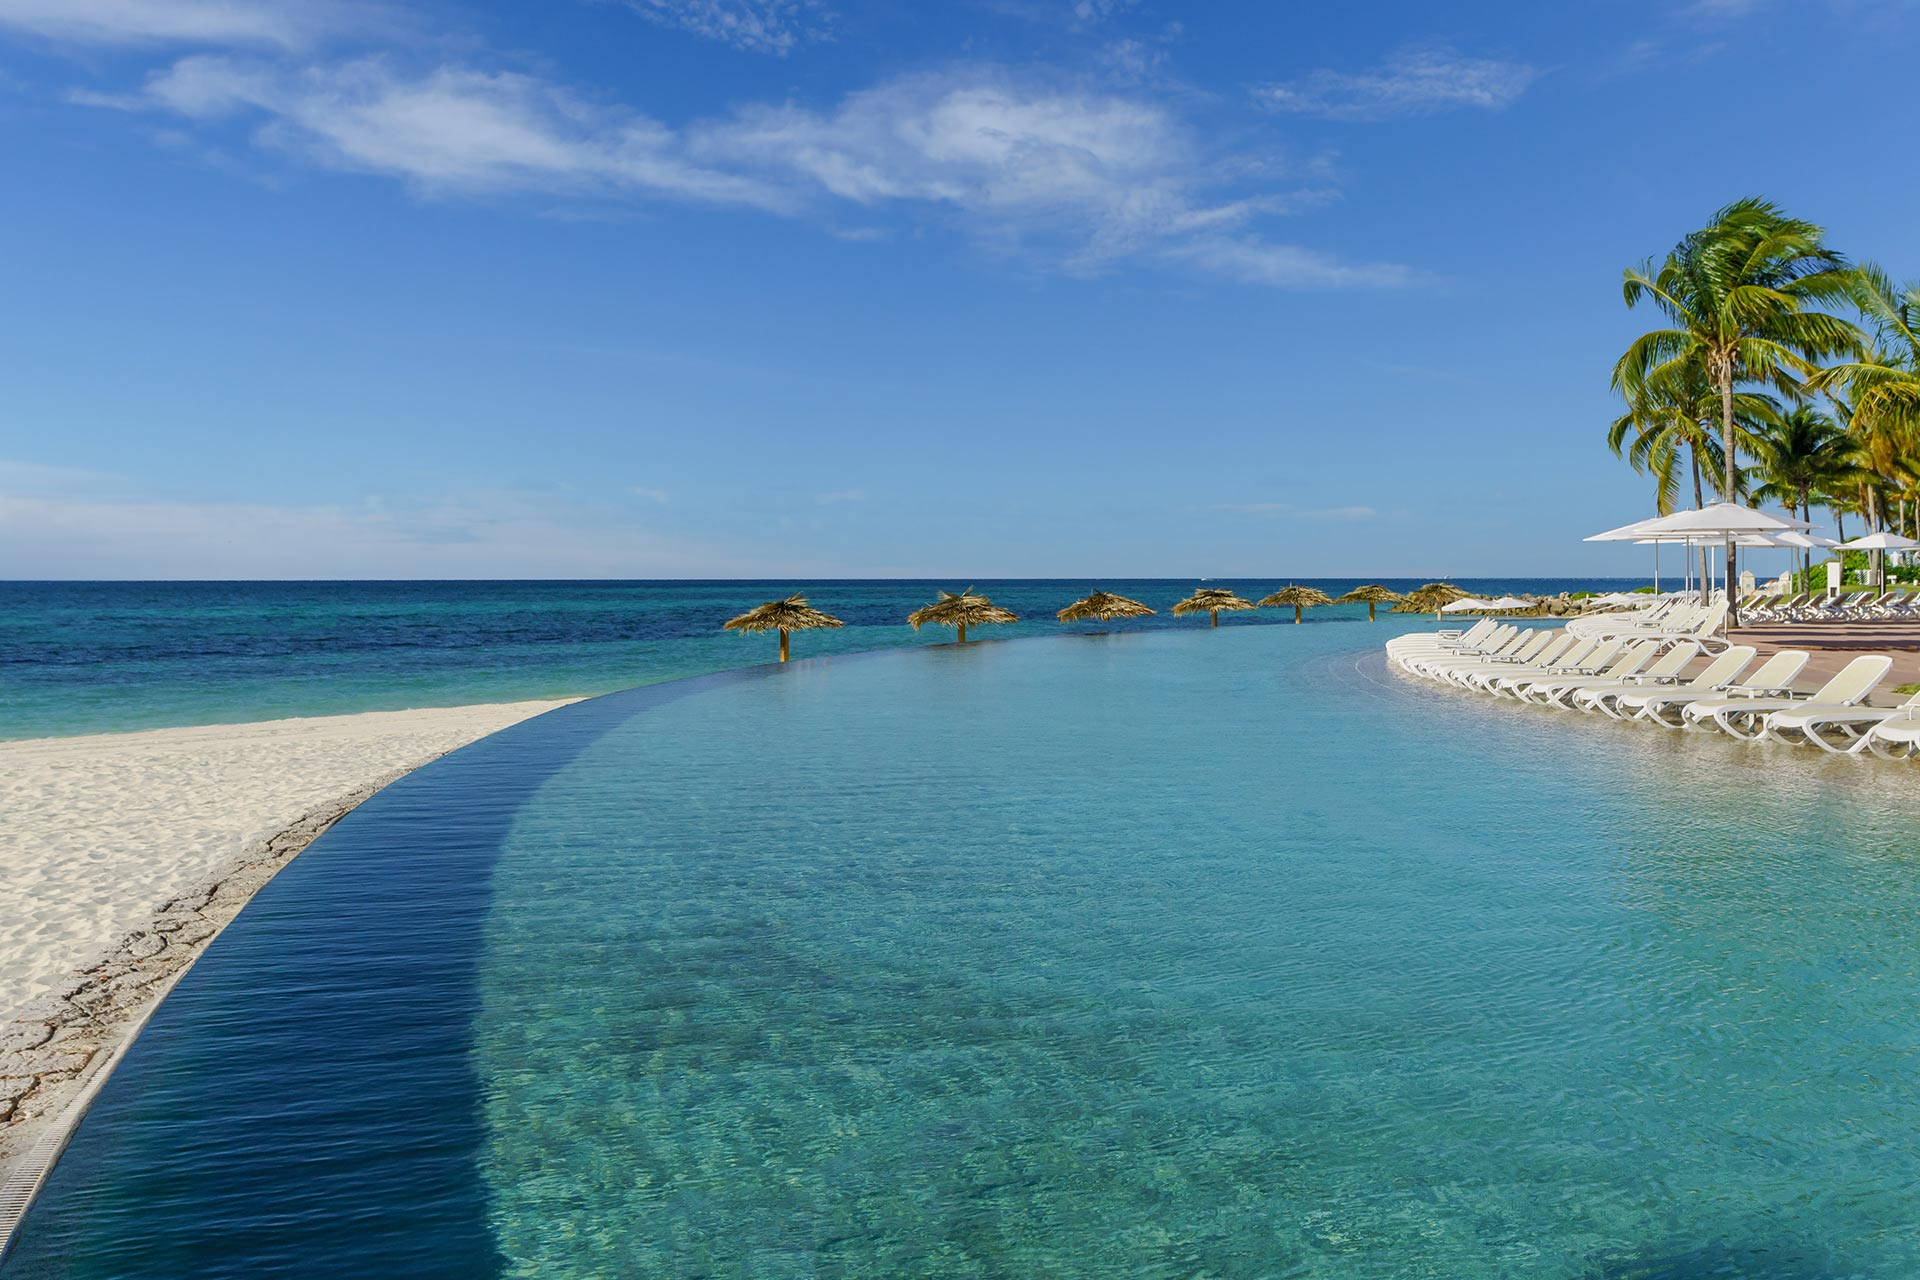 Lighthouse Pointe at Grand Lucayan Resort in the Bahamas; Photo Courtesy of Lighthouse Pointe at Grand Lucayan Resort